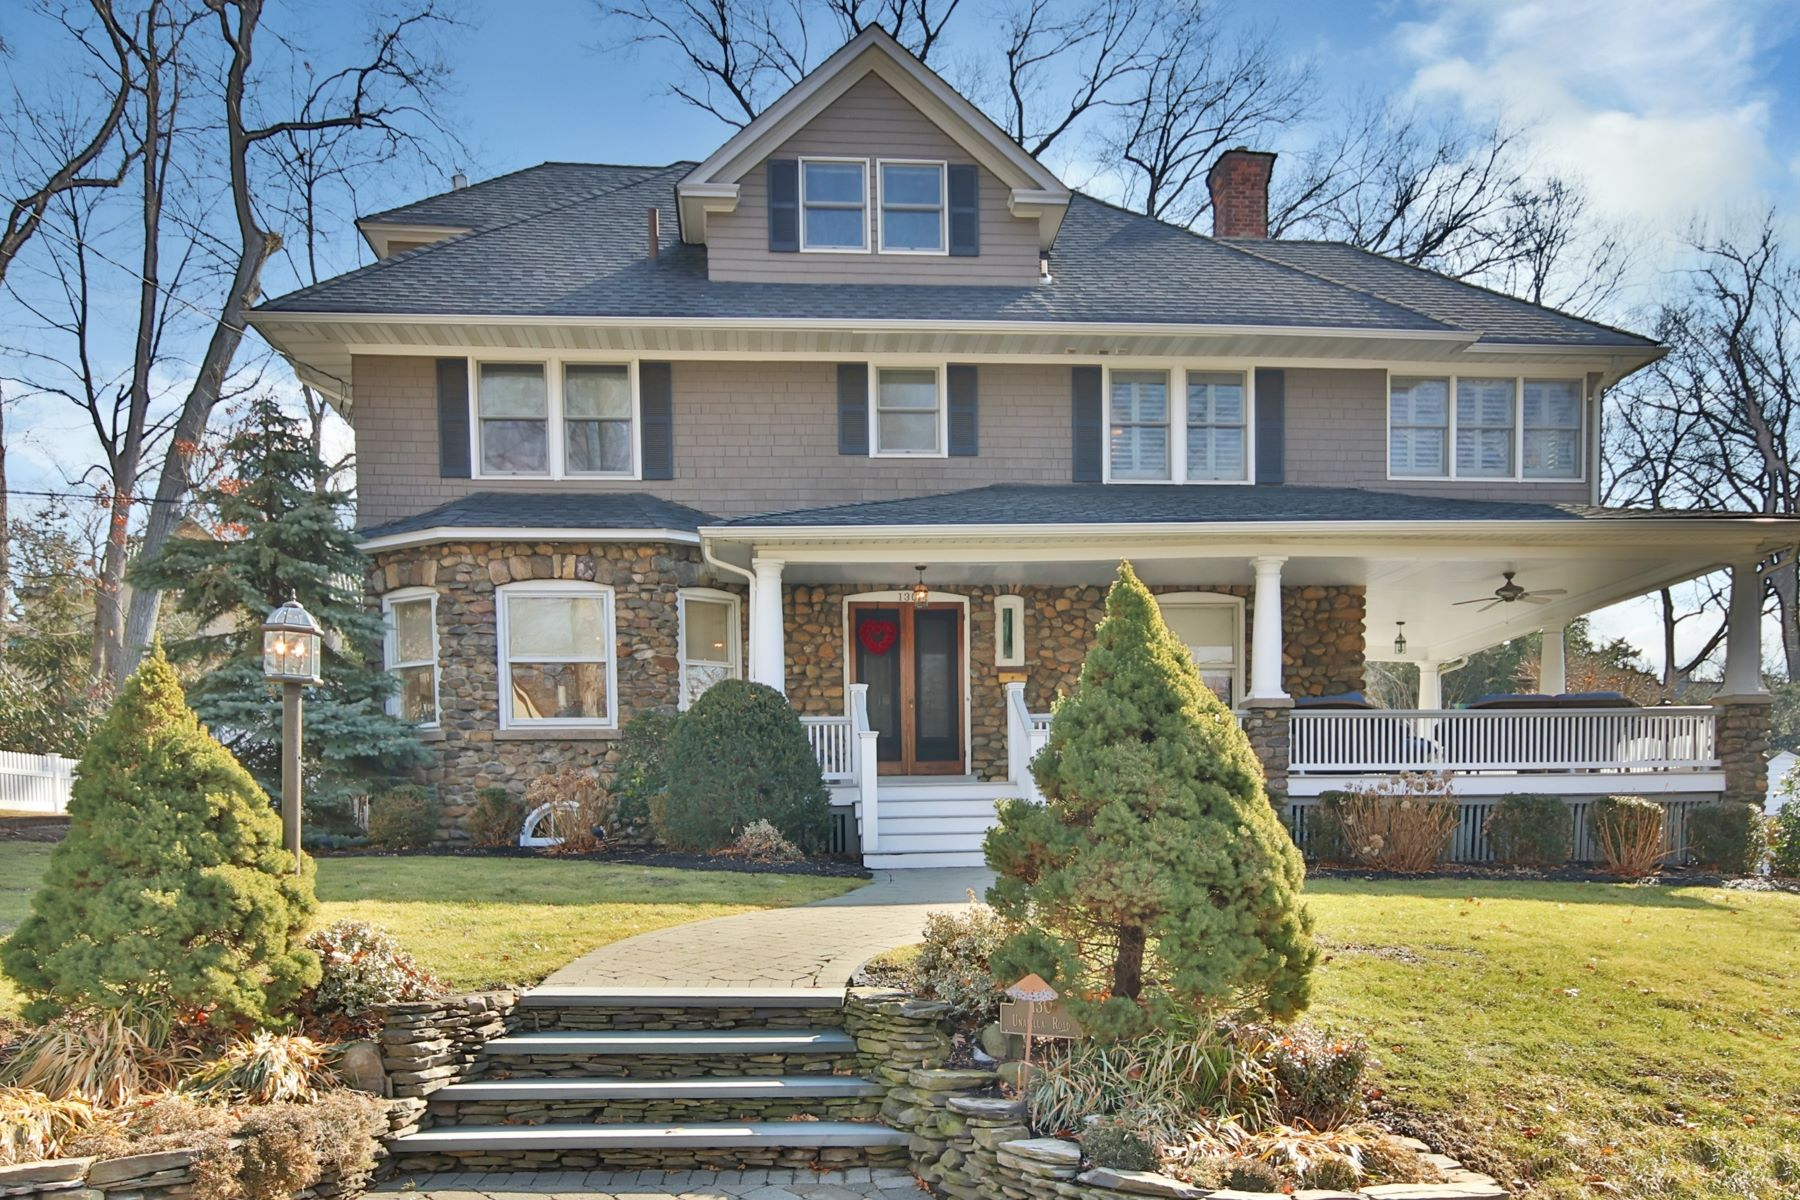 Maison unifamiliale pour l à vendre à Style And Comfort Abound In This Updated Classic Ridgewood Colonial. 130 Unadilla Road, Ridgewood, New Jersey, 07450 États-Unis